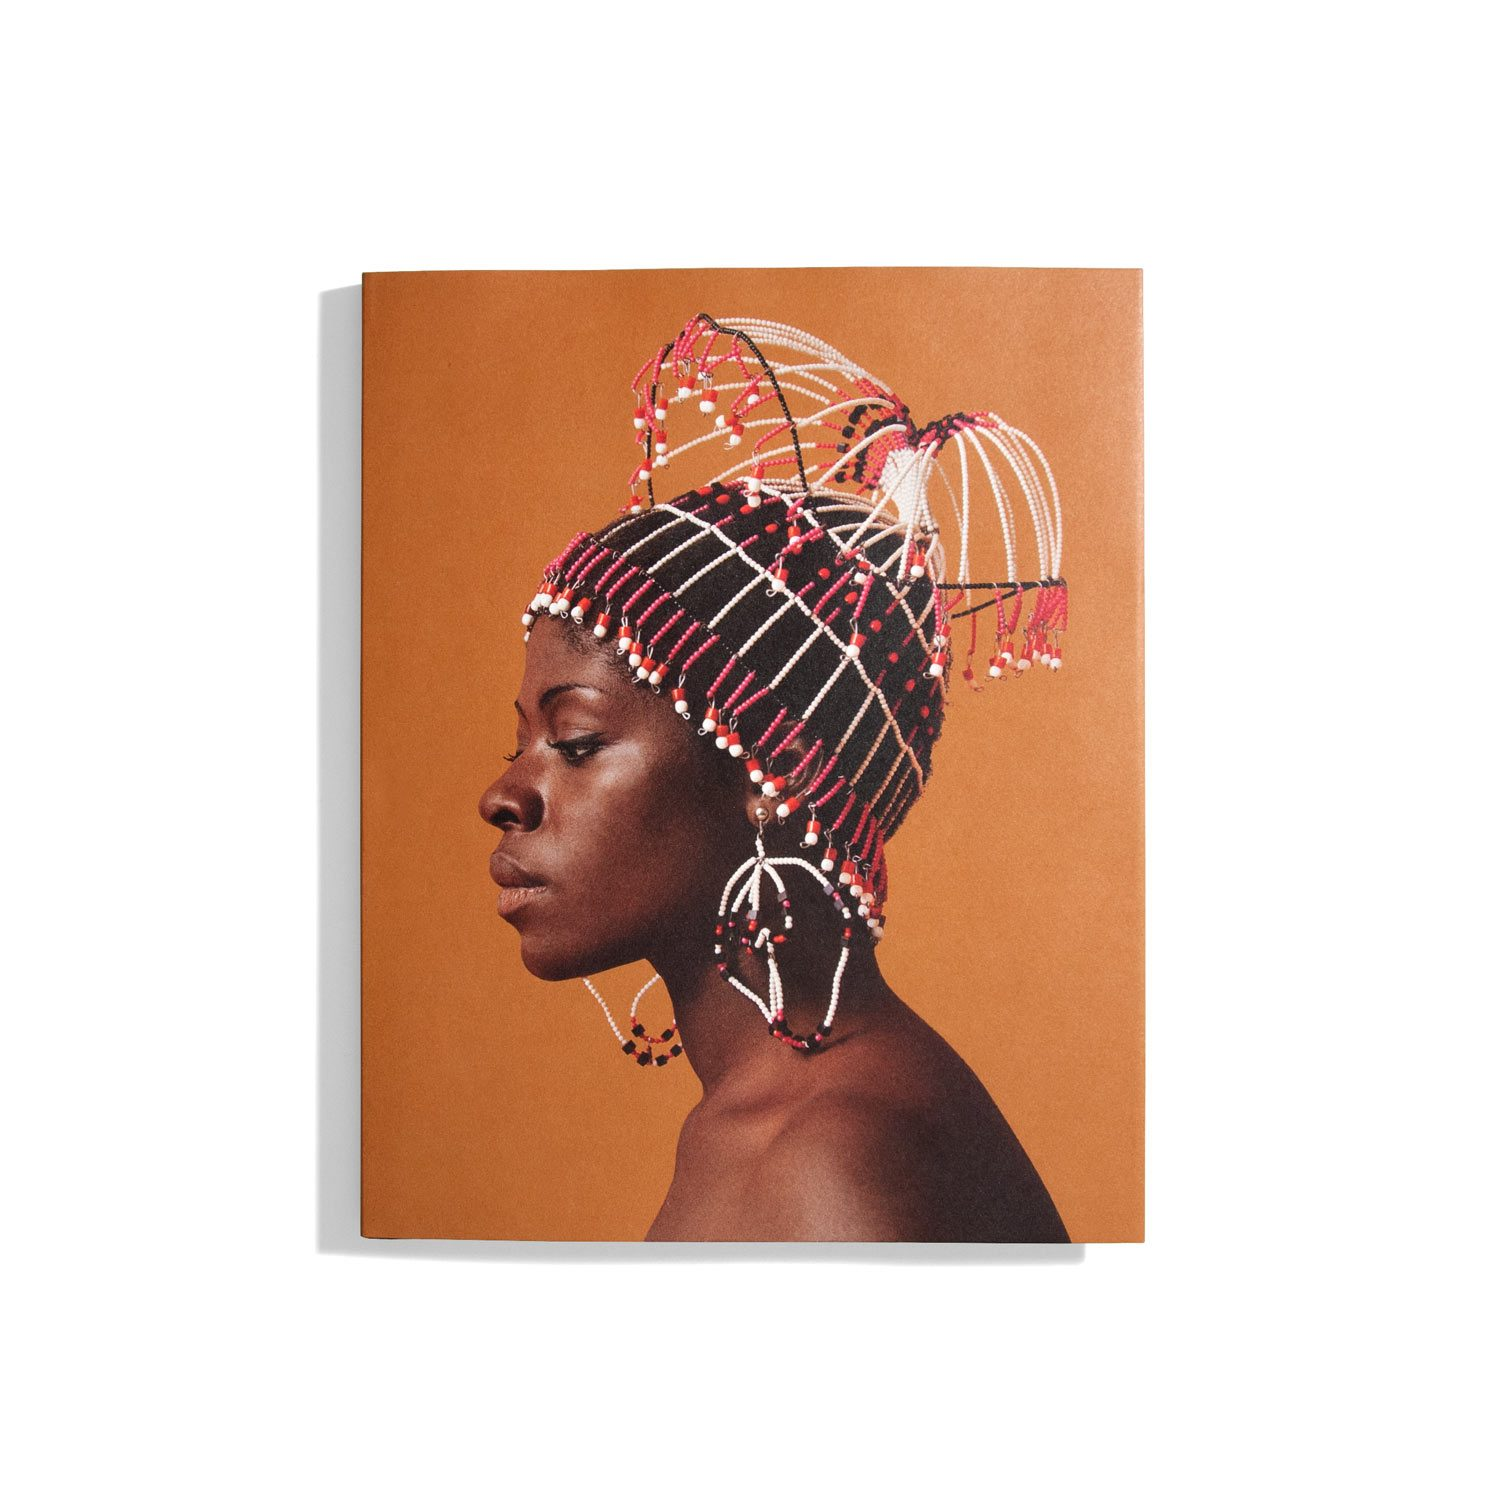 Black Is Beautiful - Kwame Brathwaite